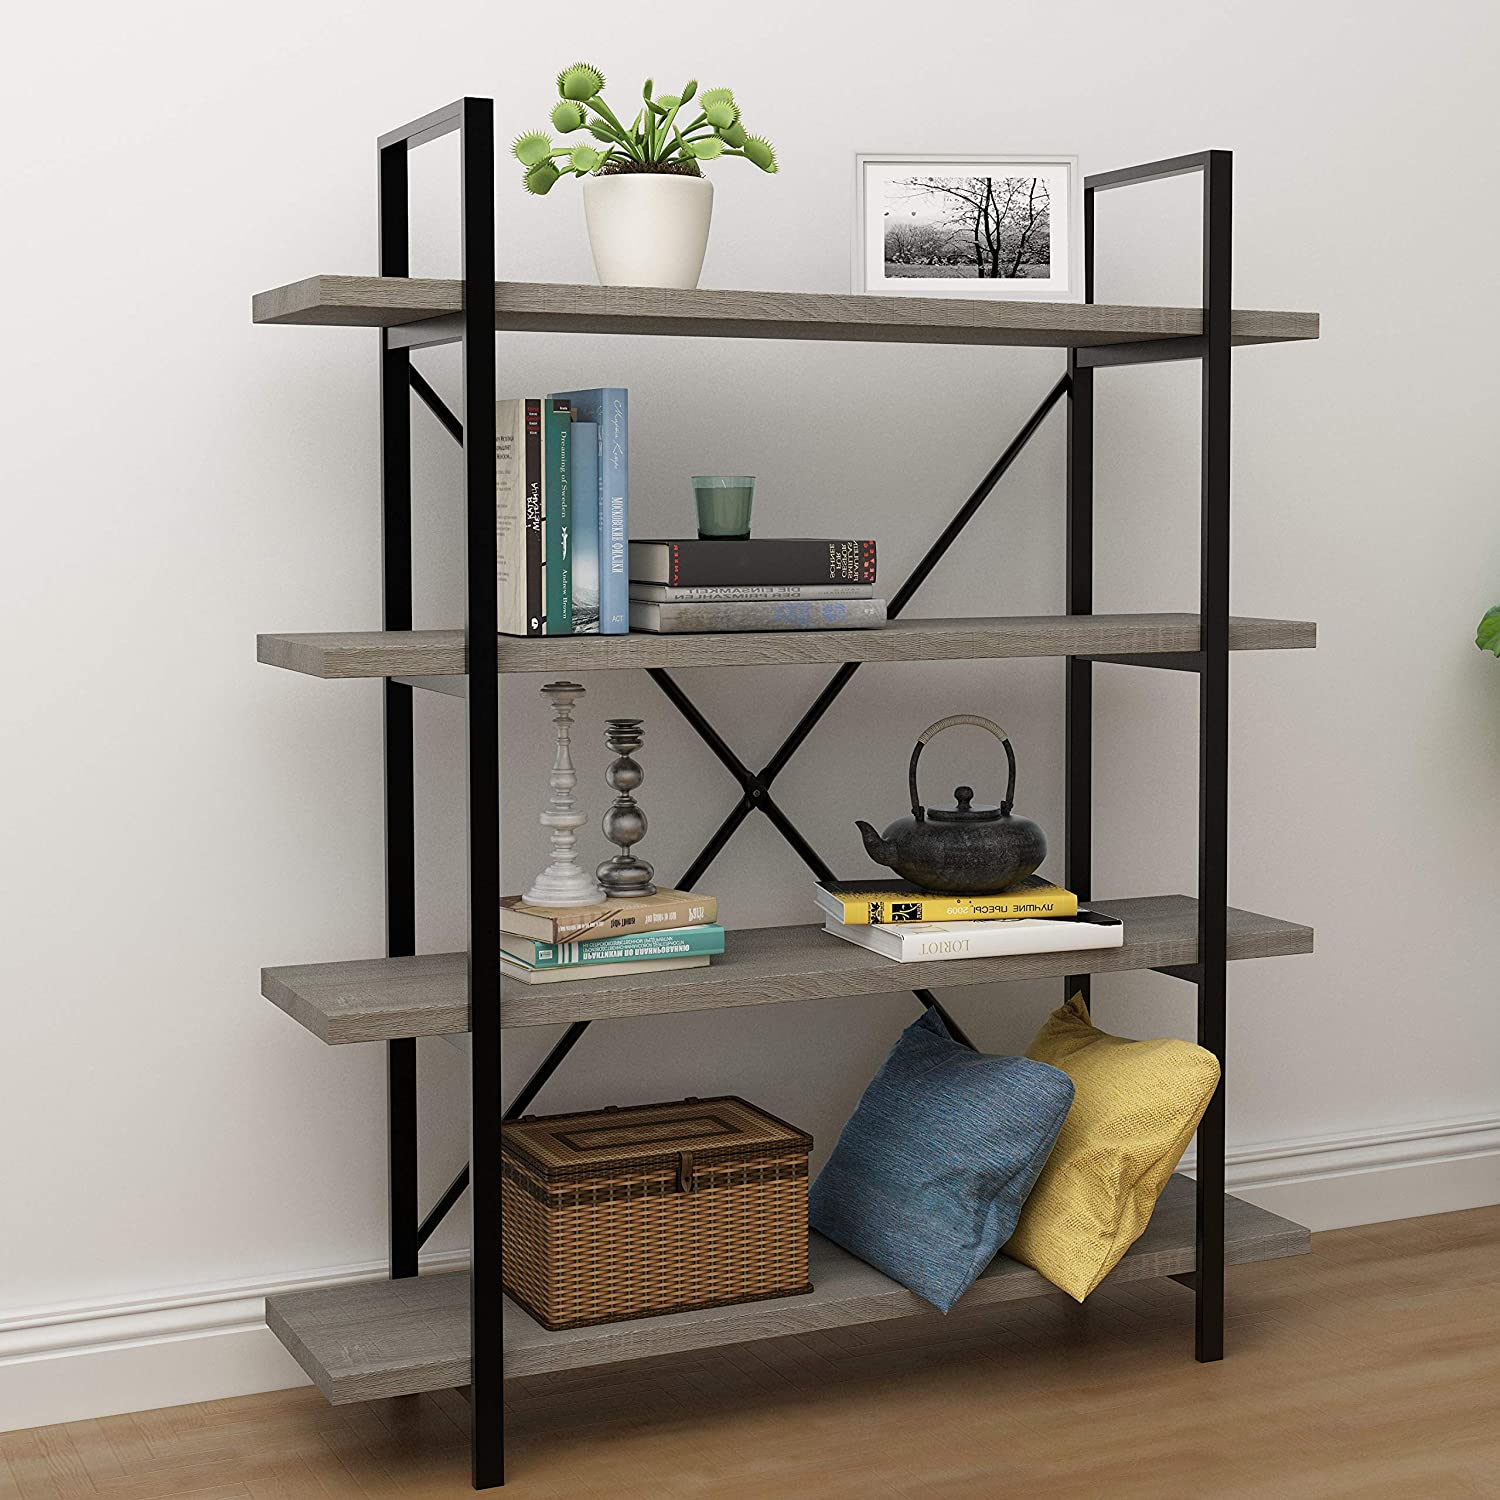 45MinST 4-Tier Vintage Industrial Style Bookcase Metal and Wood Bookshelf Furniture for Collection, Gray Oak 3 4 5 Tier 4-Tier